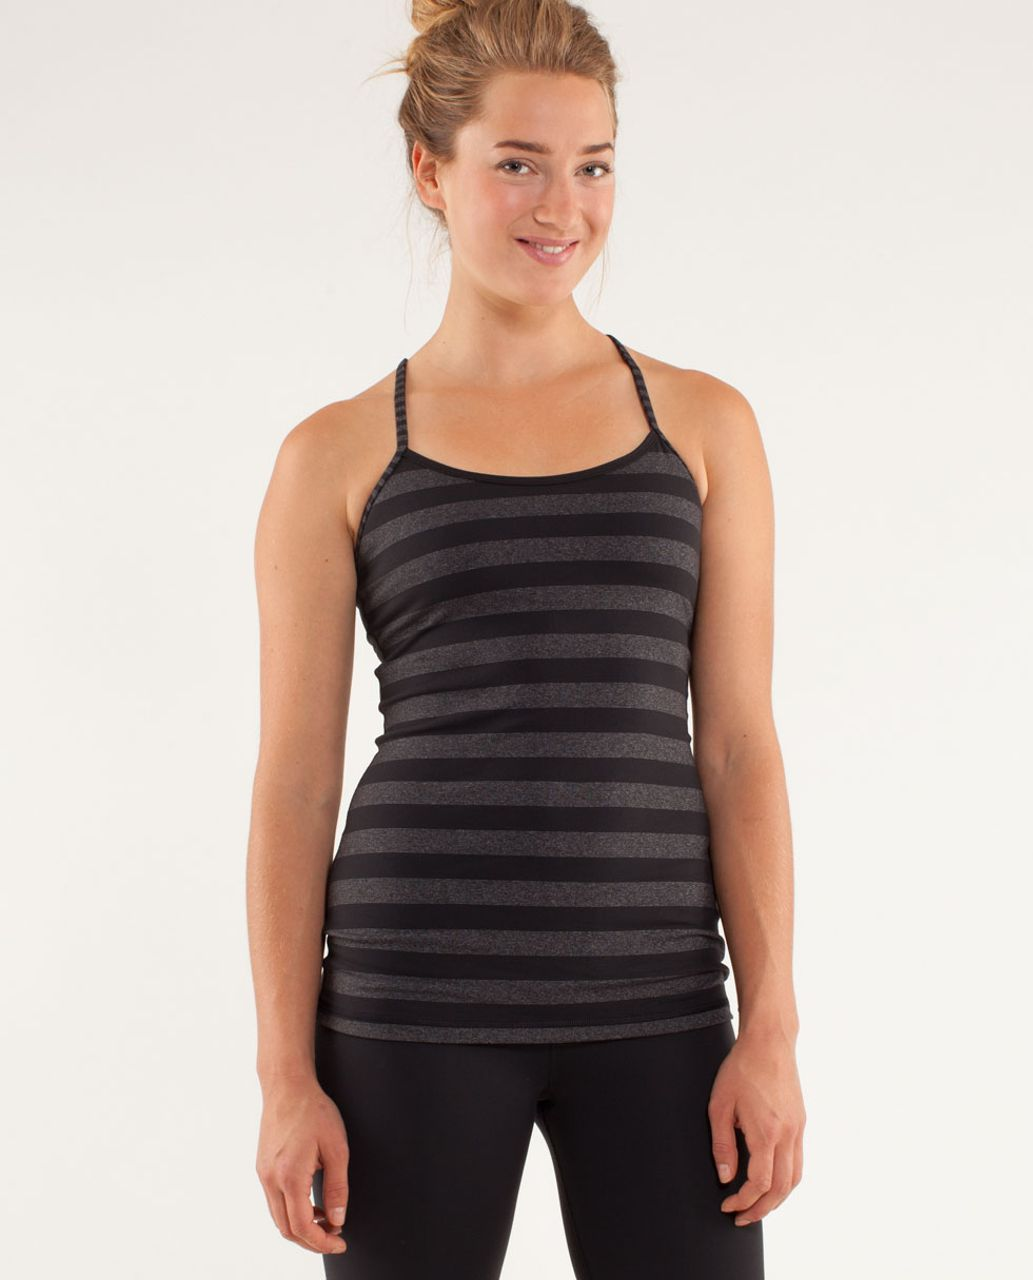 Lululemon Power Y Tank *Luon Light - Micro Macro Black Heathered Black / Black